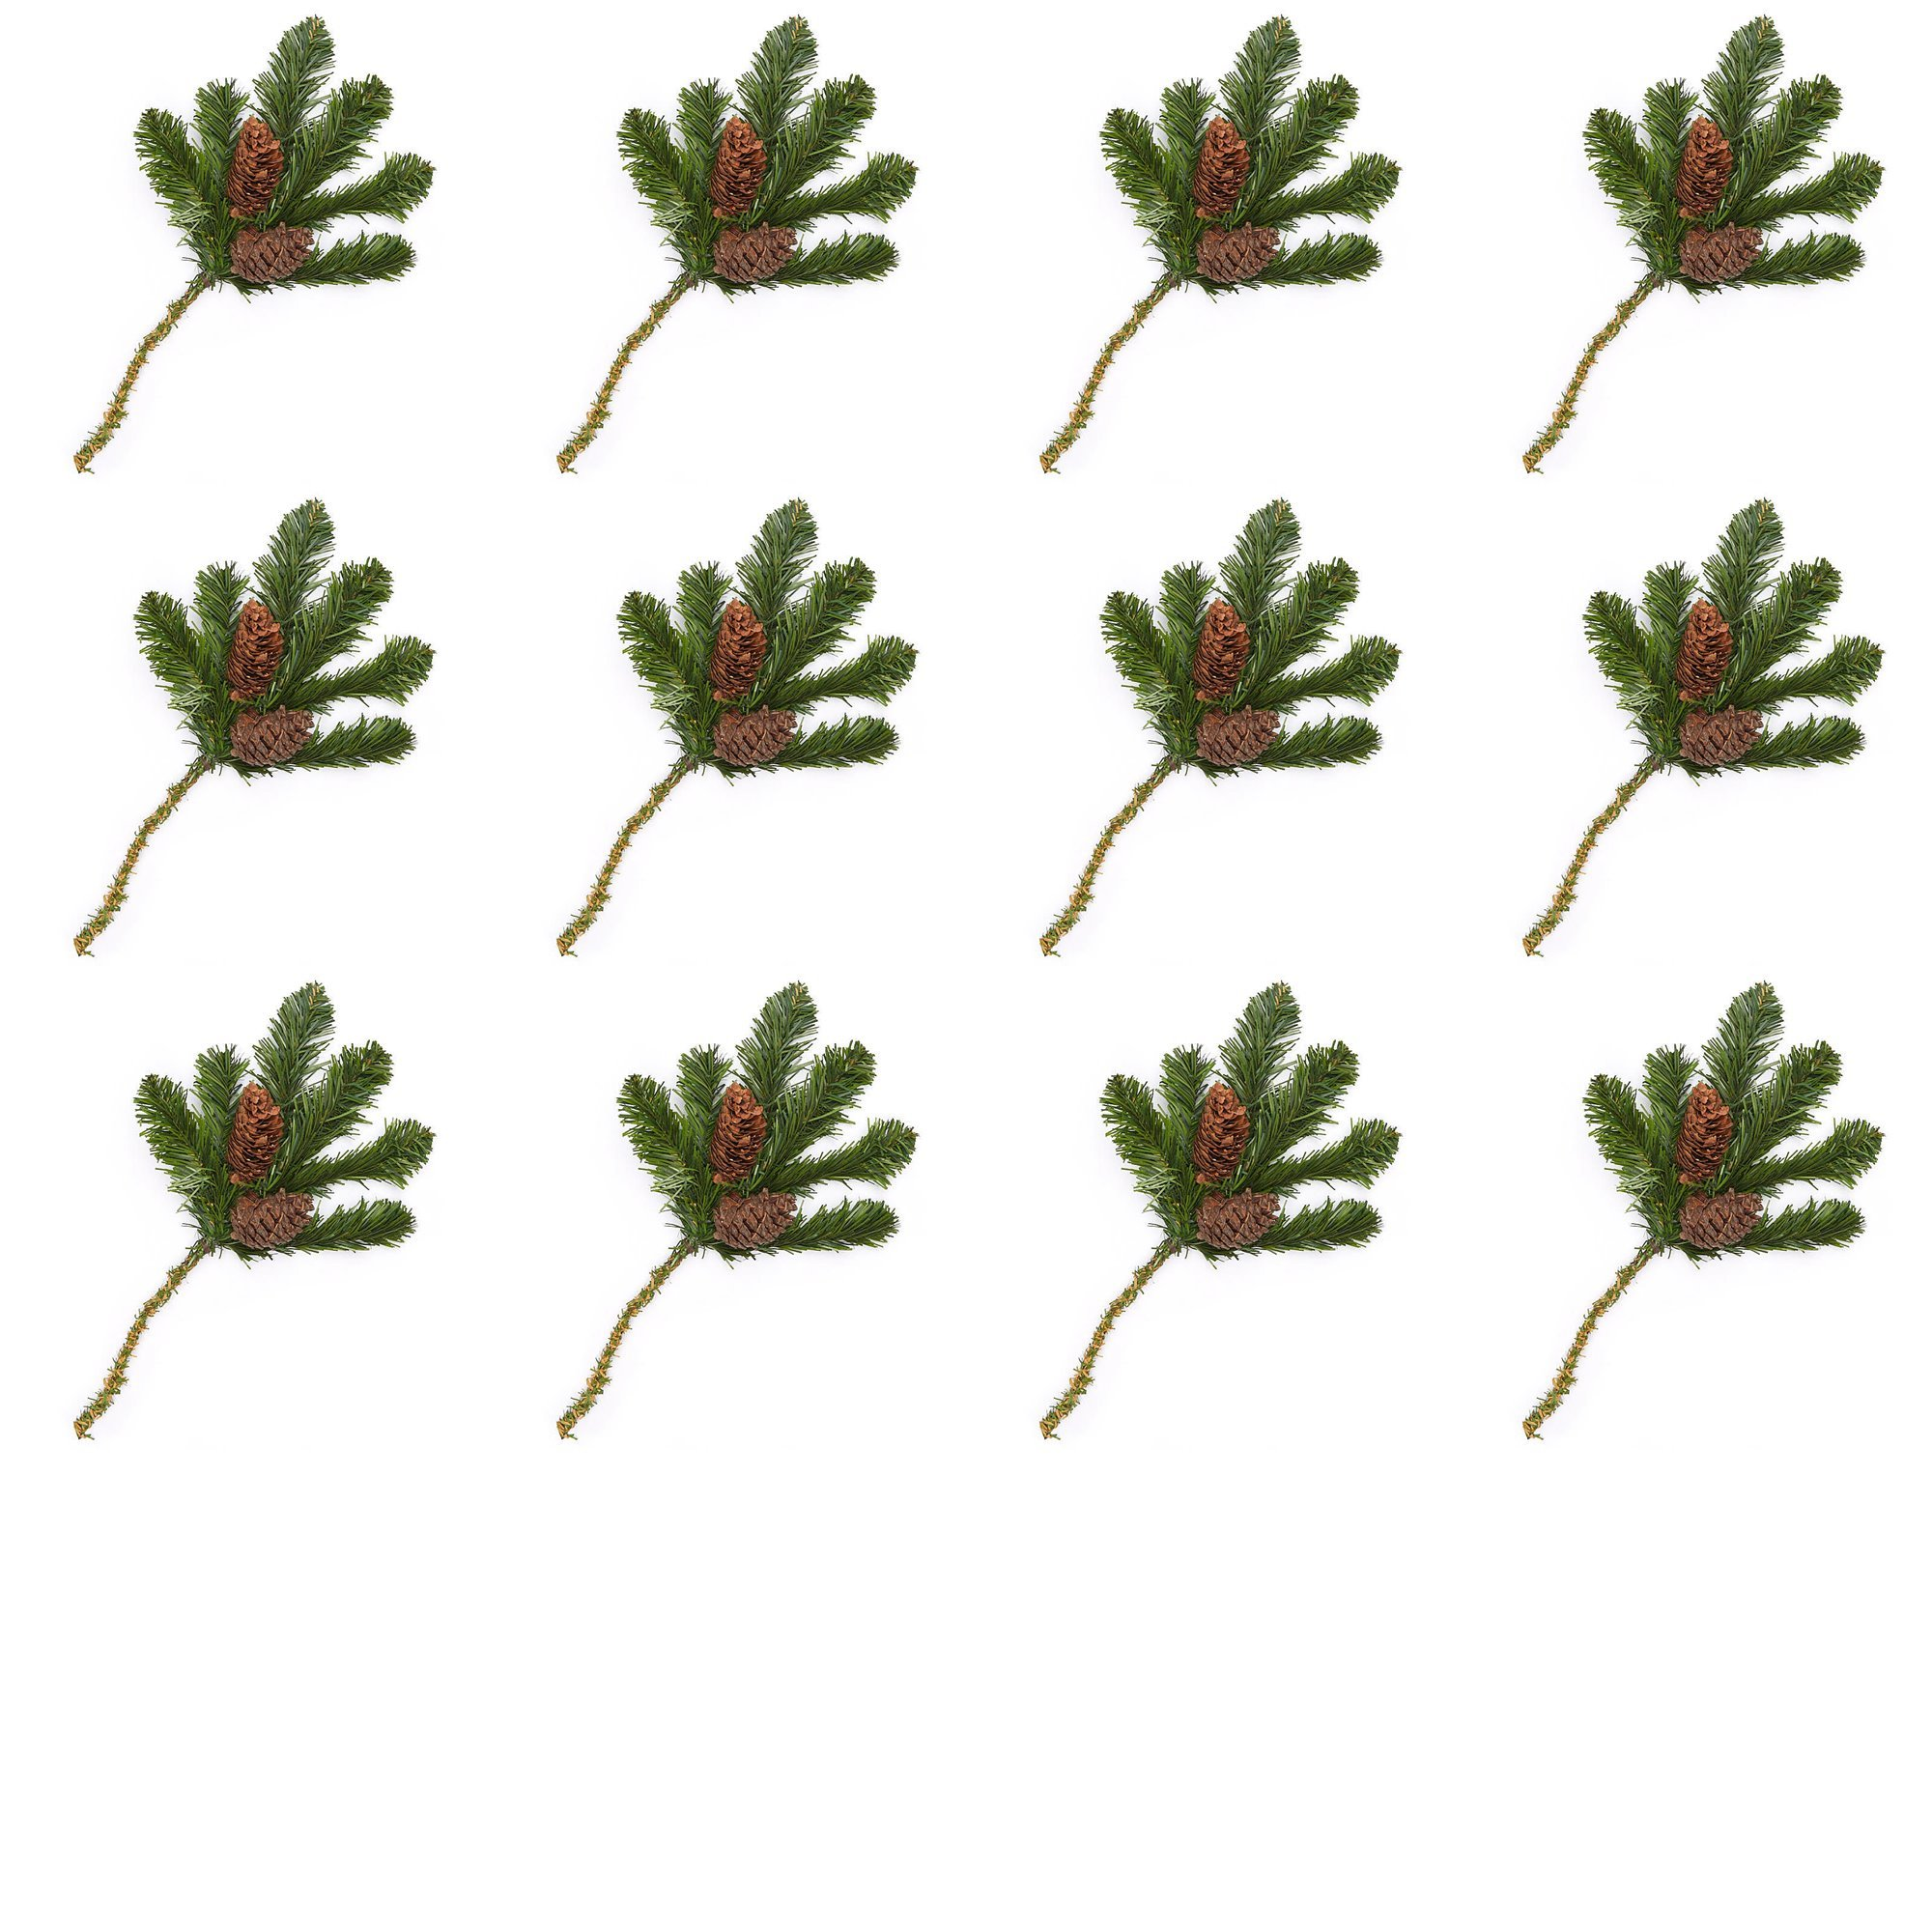 Factory Direct Craft Artificial Pine Picks with Natural Pinecones for Holiday Decorating - 24 Picks